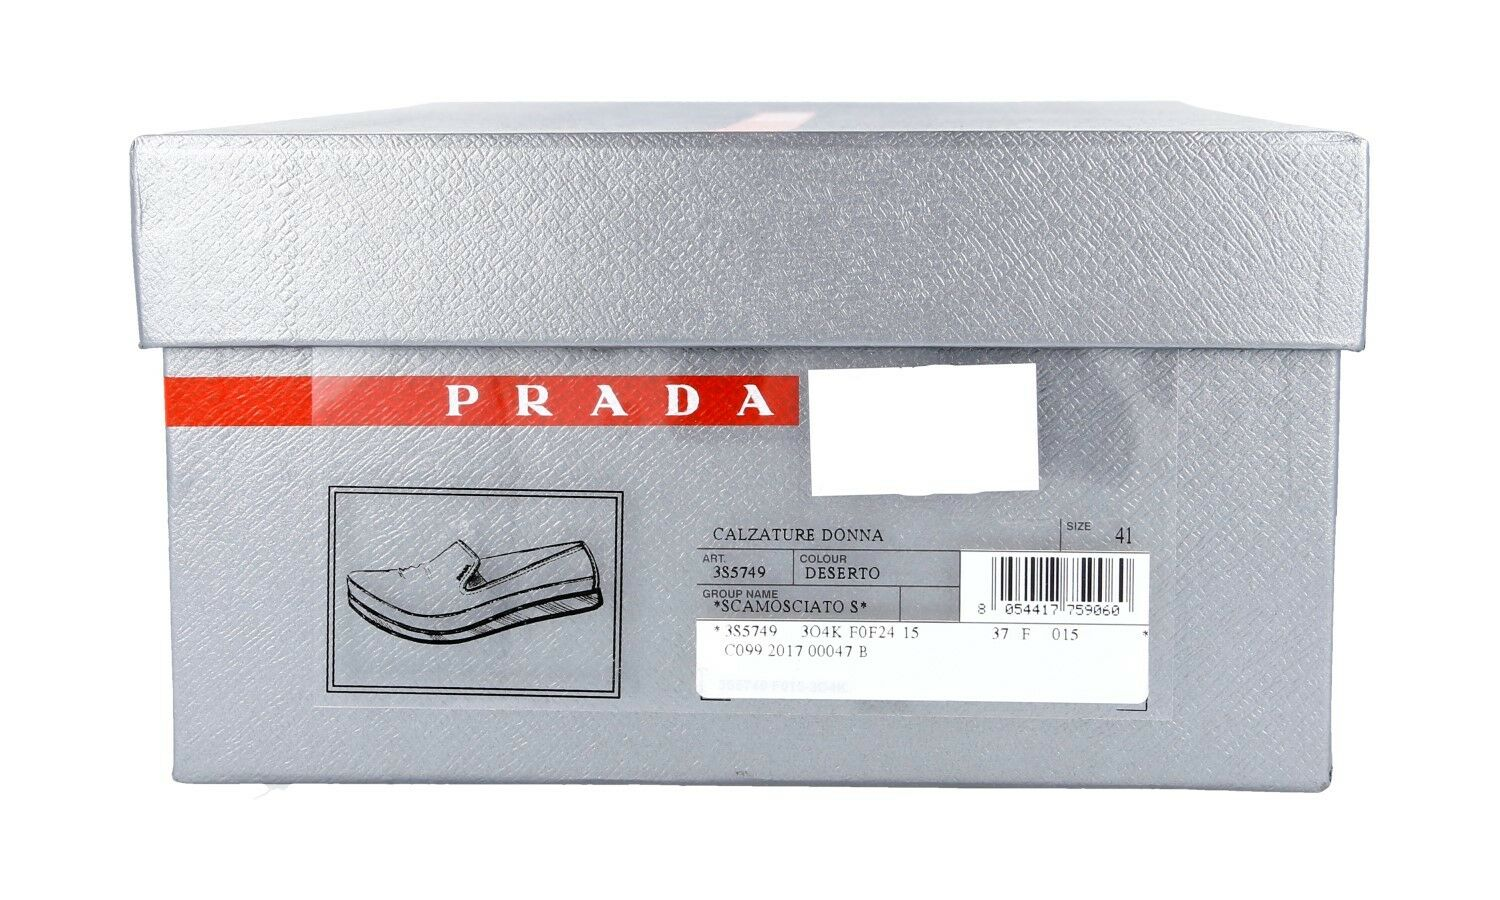 LUXUS PRADA SLIPPER SCHUHE 3S5749 NEW DESERTO NEU NEW 3S5749 40,5 41 UK 7.5 b74d8a